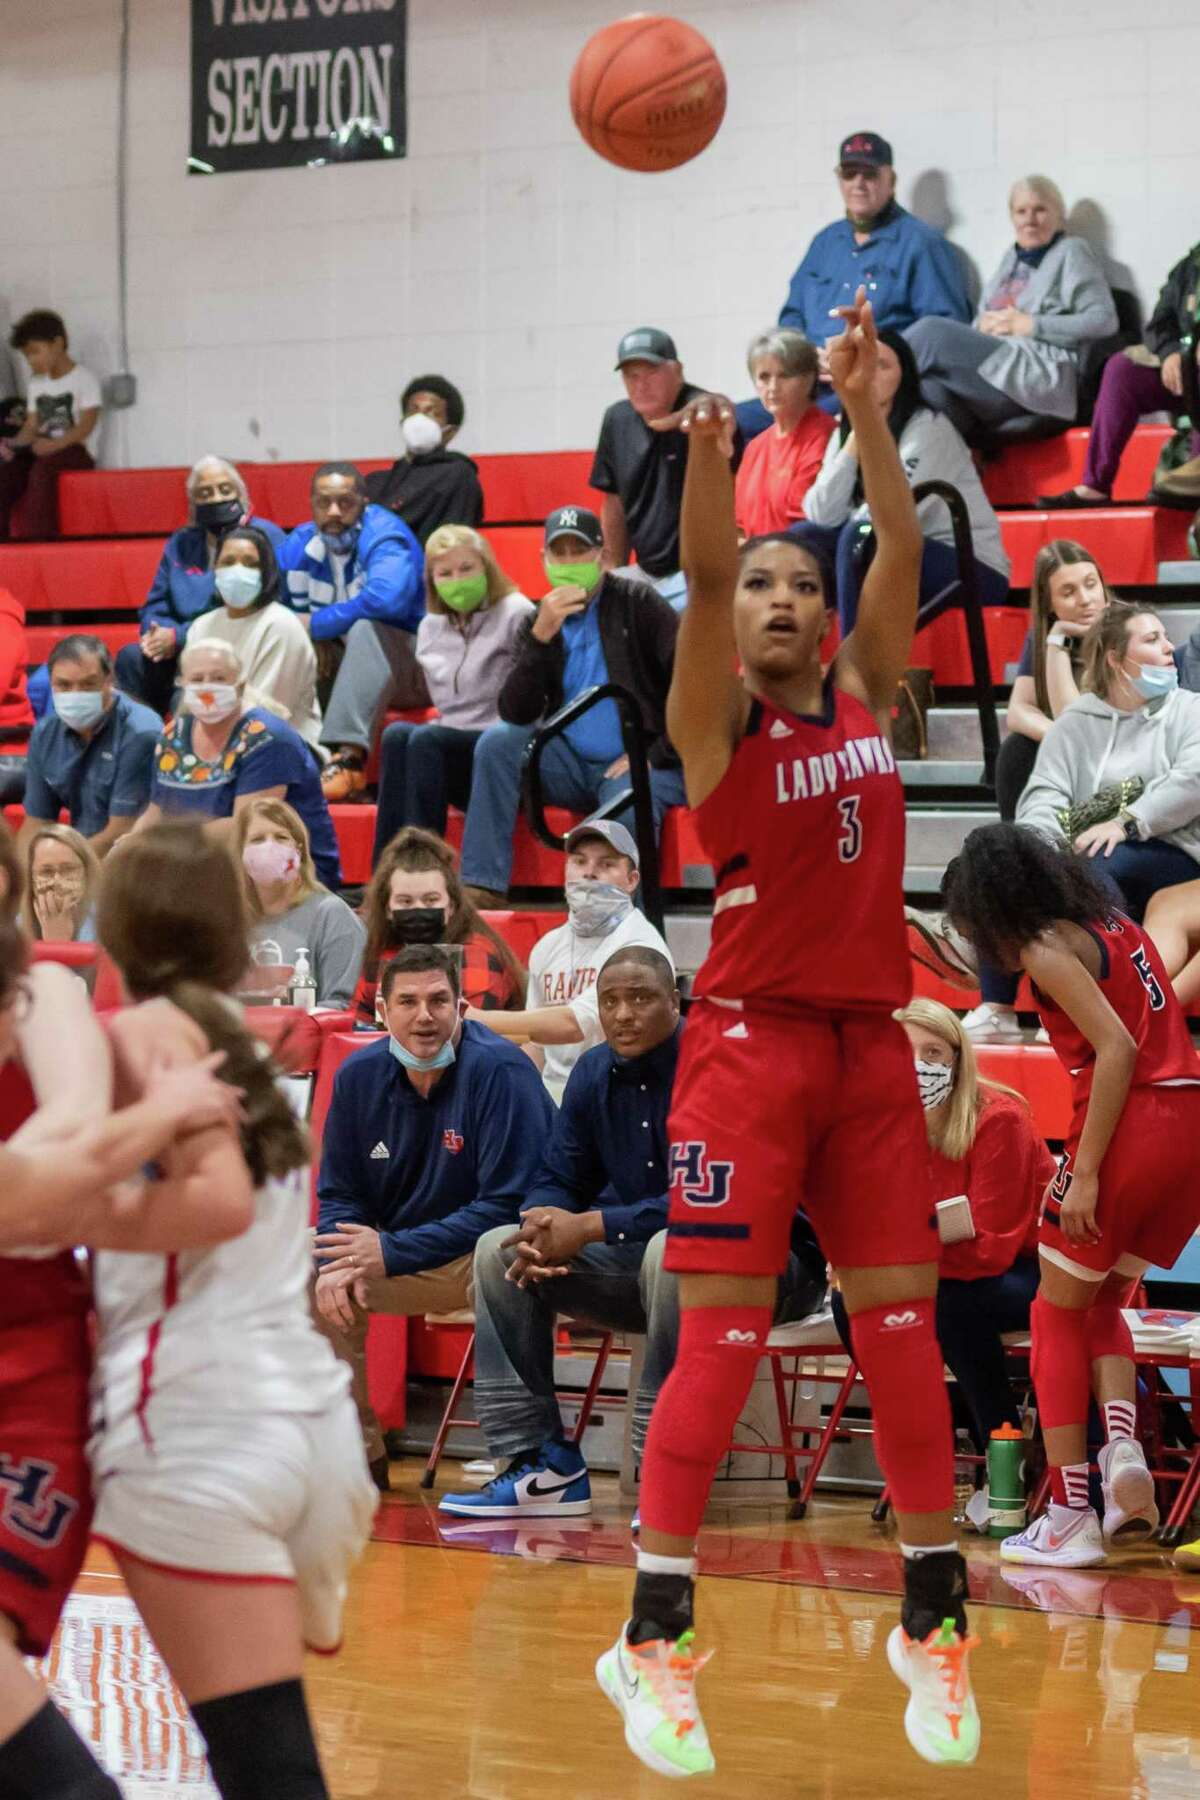 H-J's Ashlon Jackson (3) puts up a shot in the third quarter. The Lady Hawks of Hardin-Jefferson took their winning ways to Lumberton where they downed the Lady Raiders in a physical game with the final score of 98-50. Photo made on December 30, 2020. Fran Ruchalski/The Enterprise